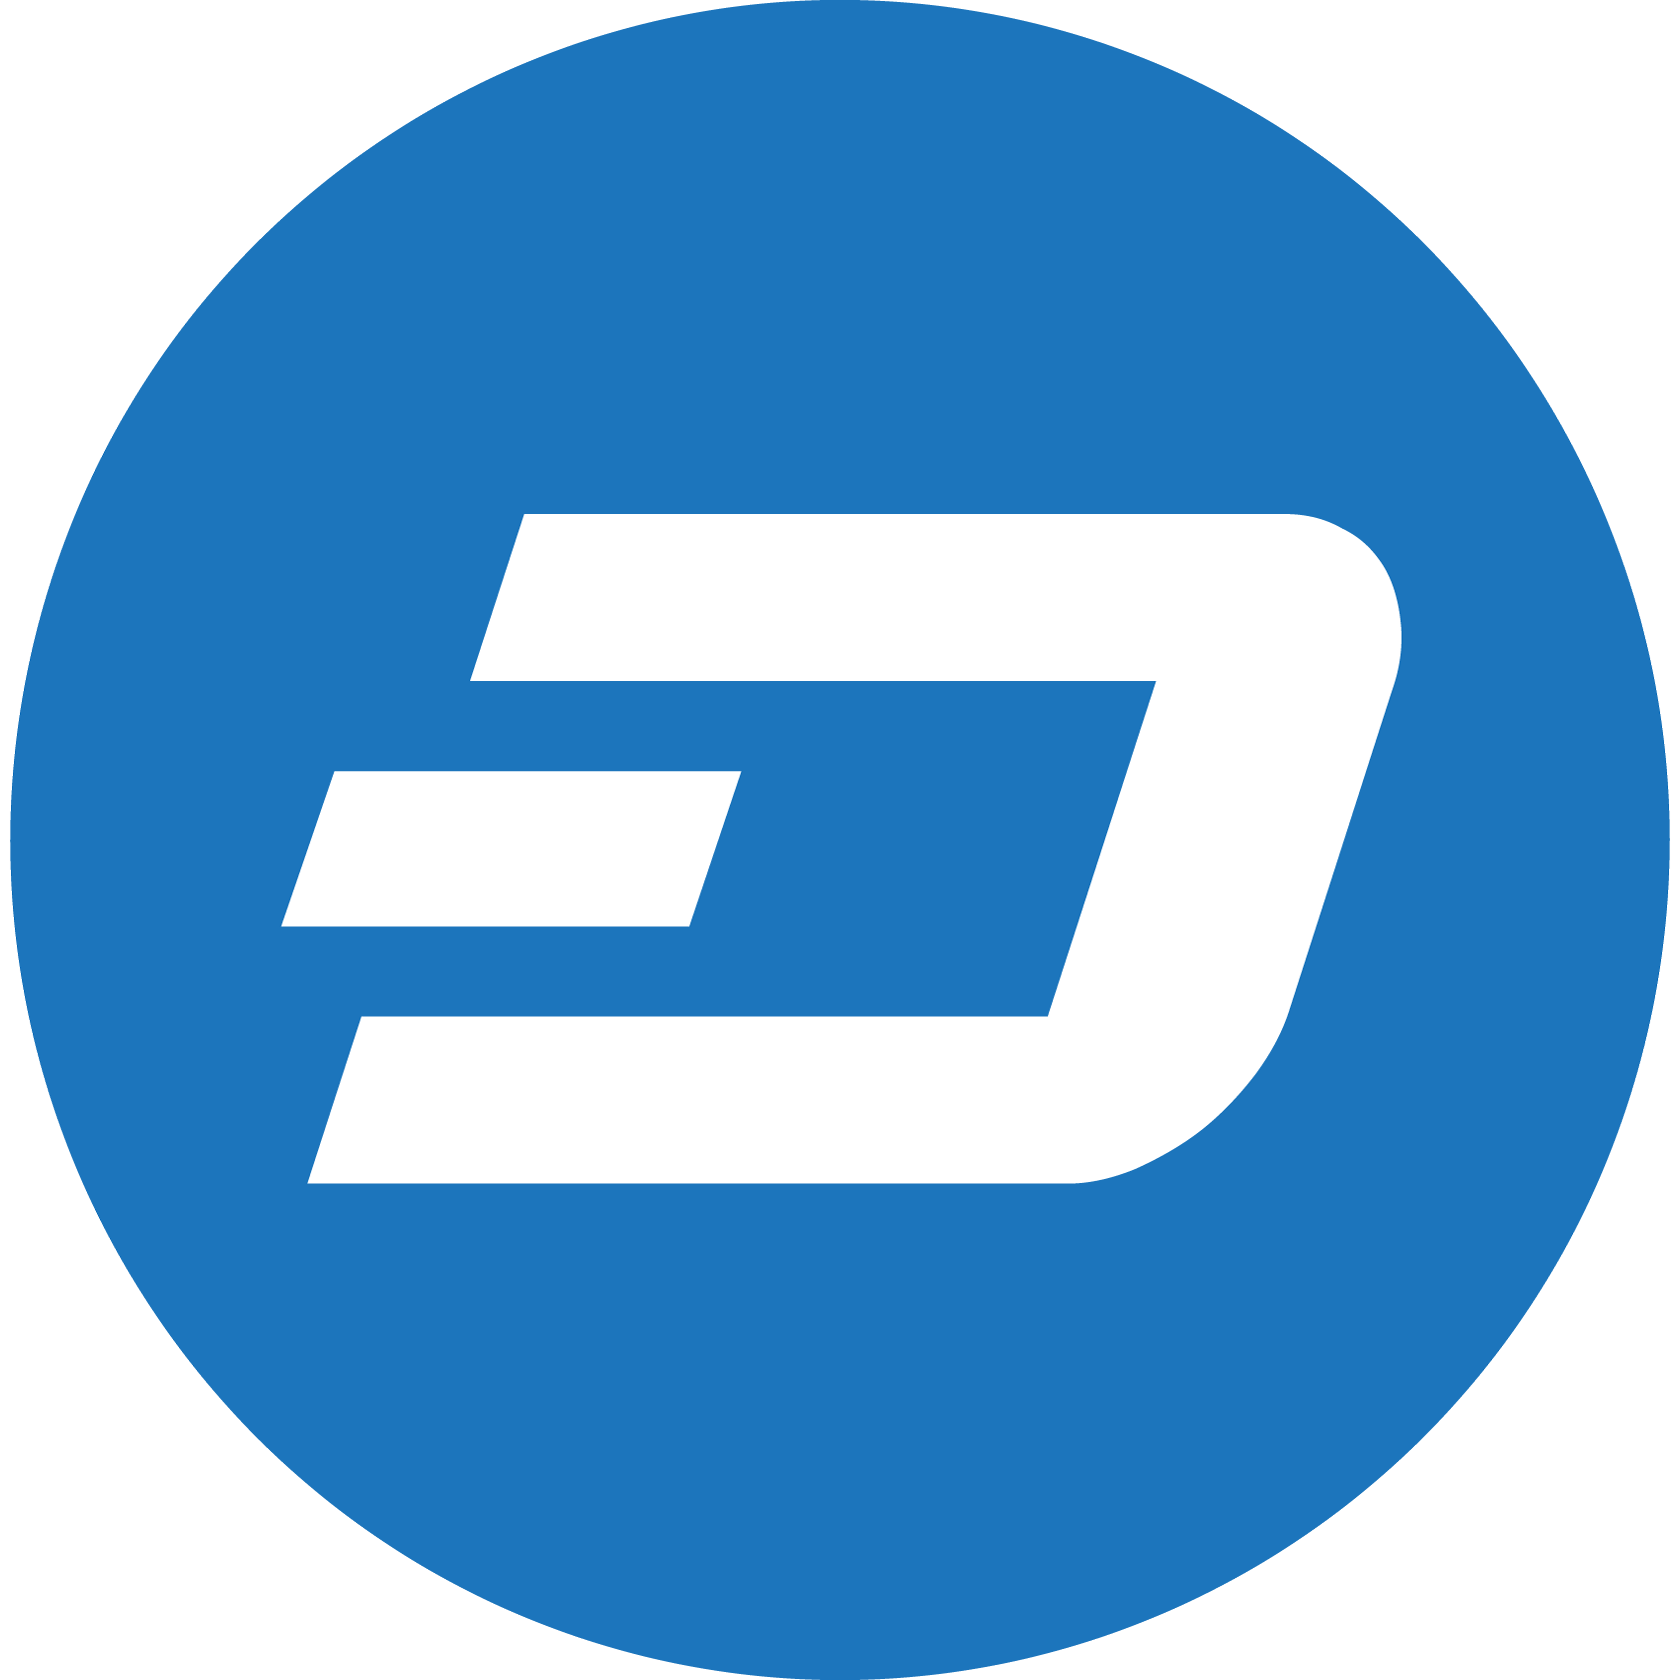 File:Dash.png.